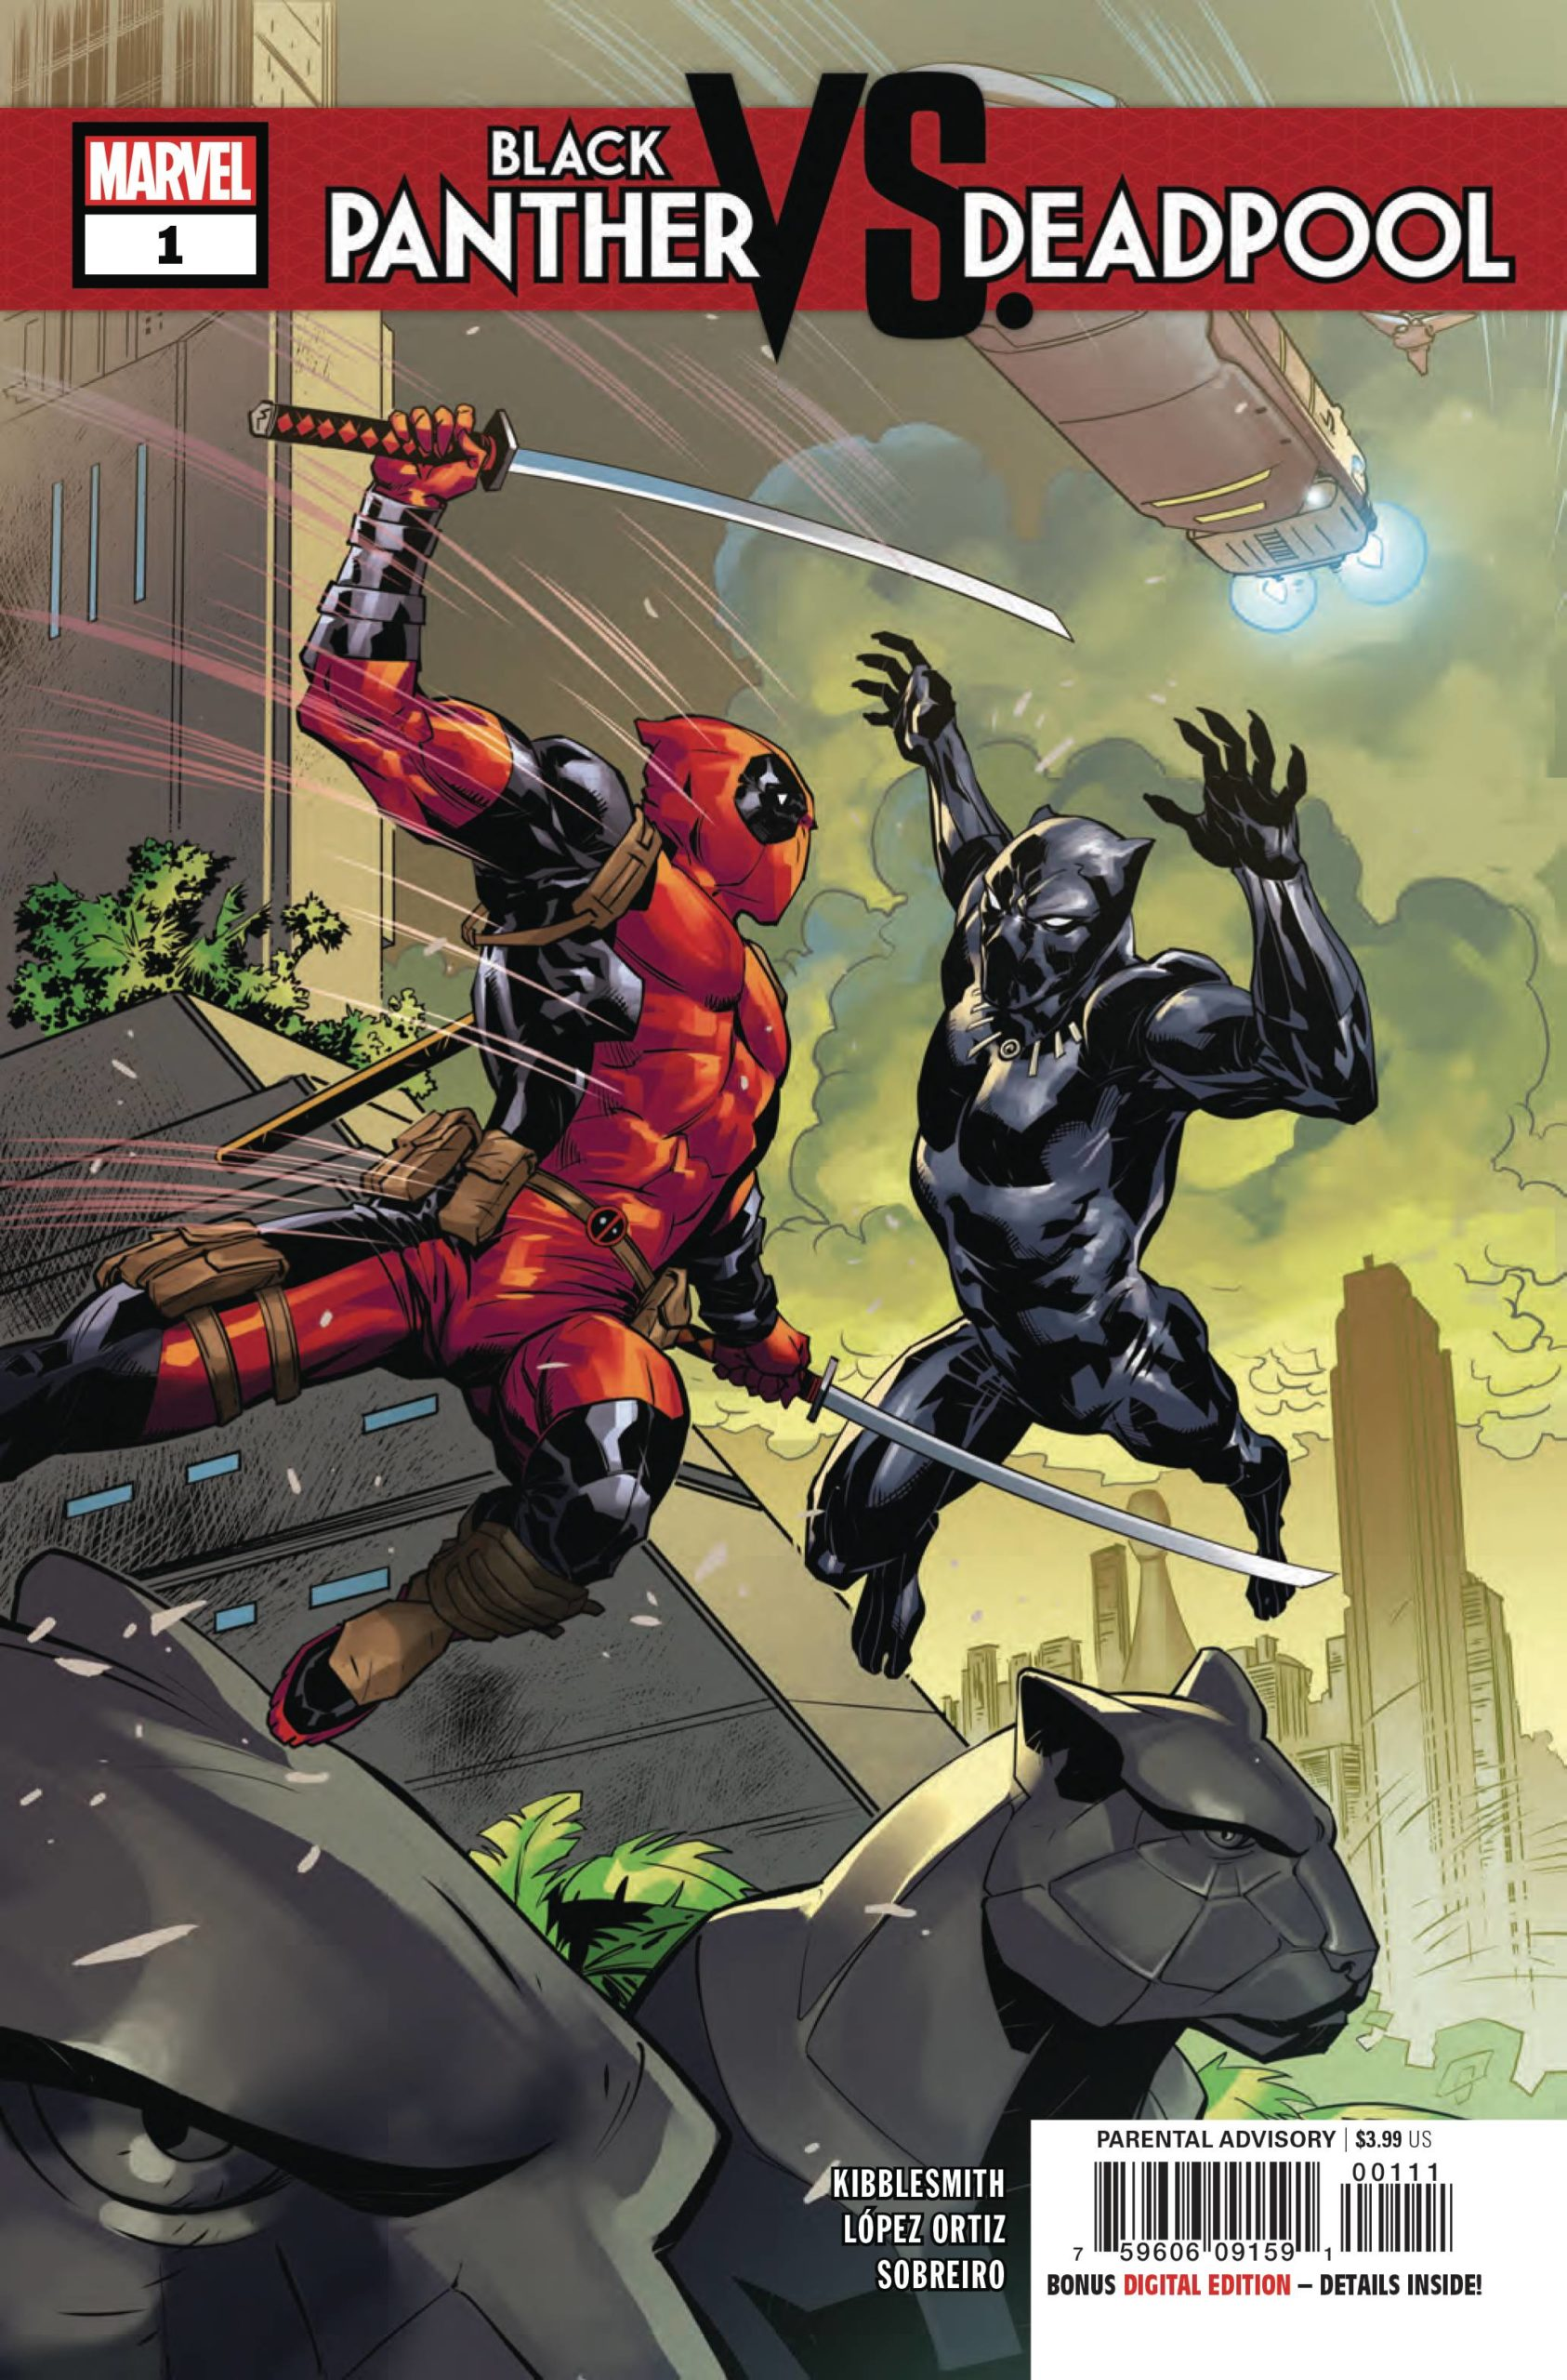 BLACK PANTHER VS DEADPOOL  (MS 5)